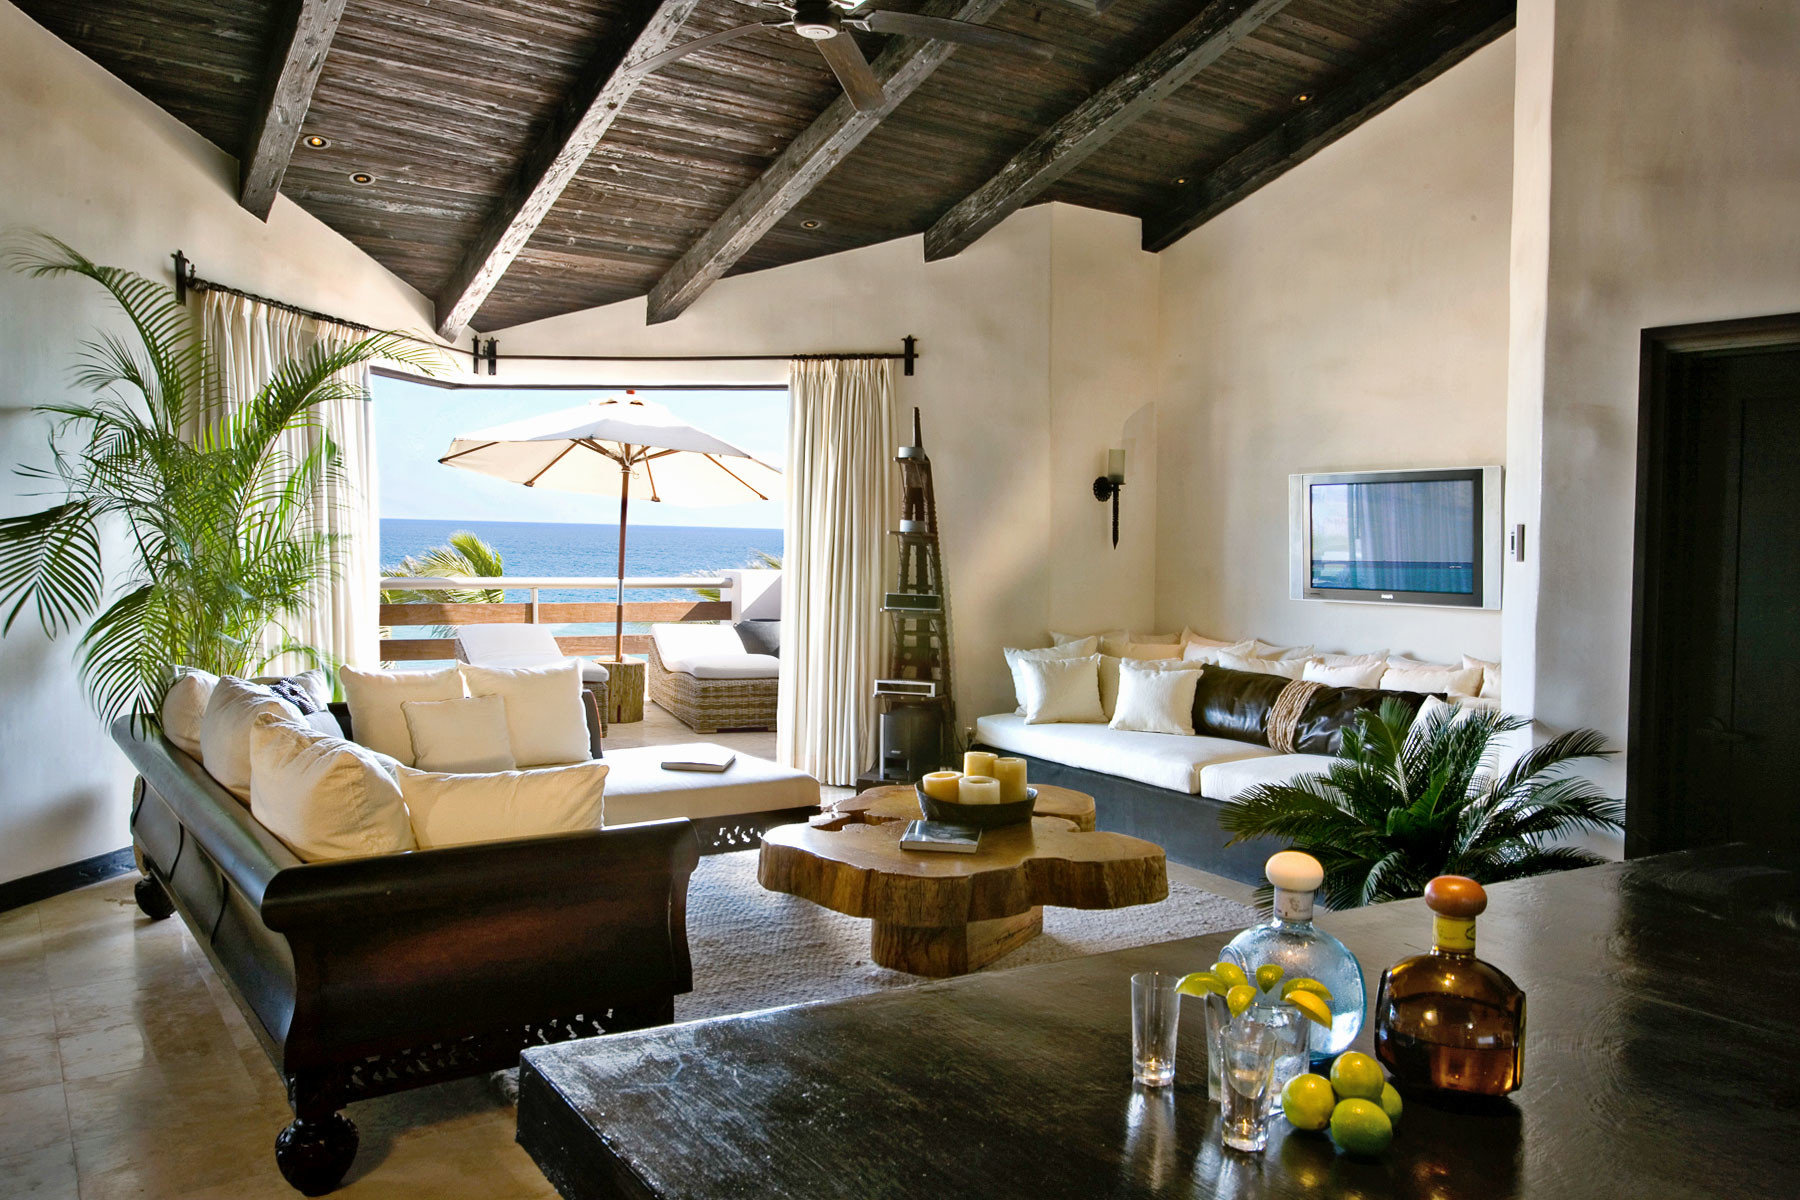 Beachfront Budget Hotels Lounge Luxury Patio property house living room home Villa mansion cottage